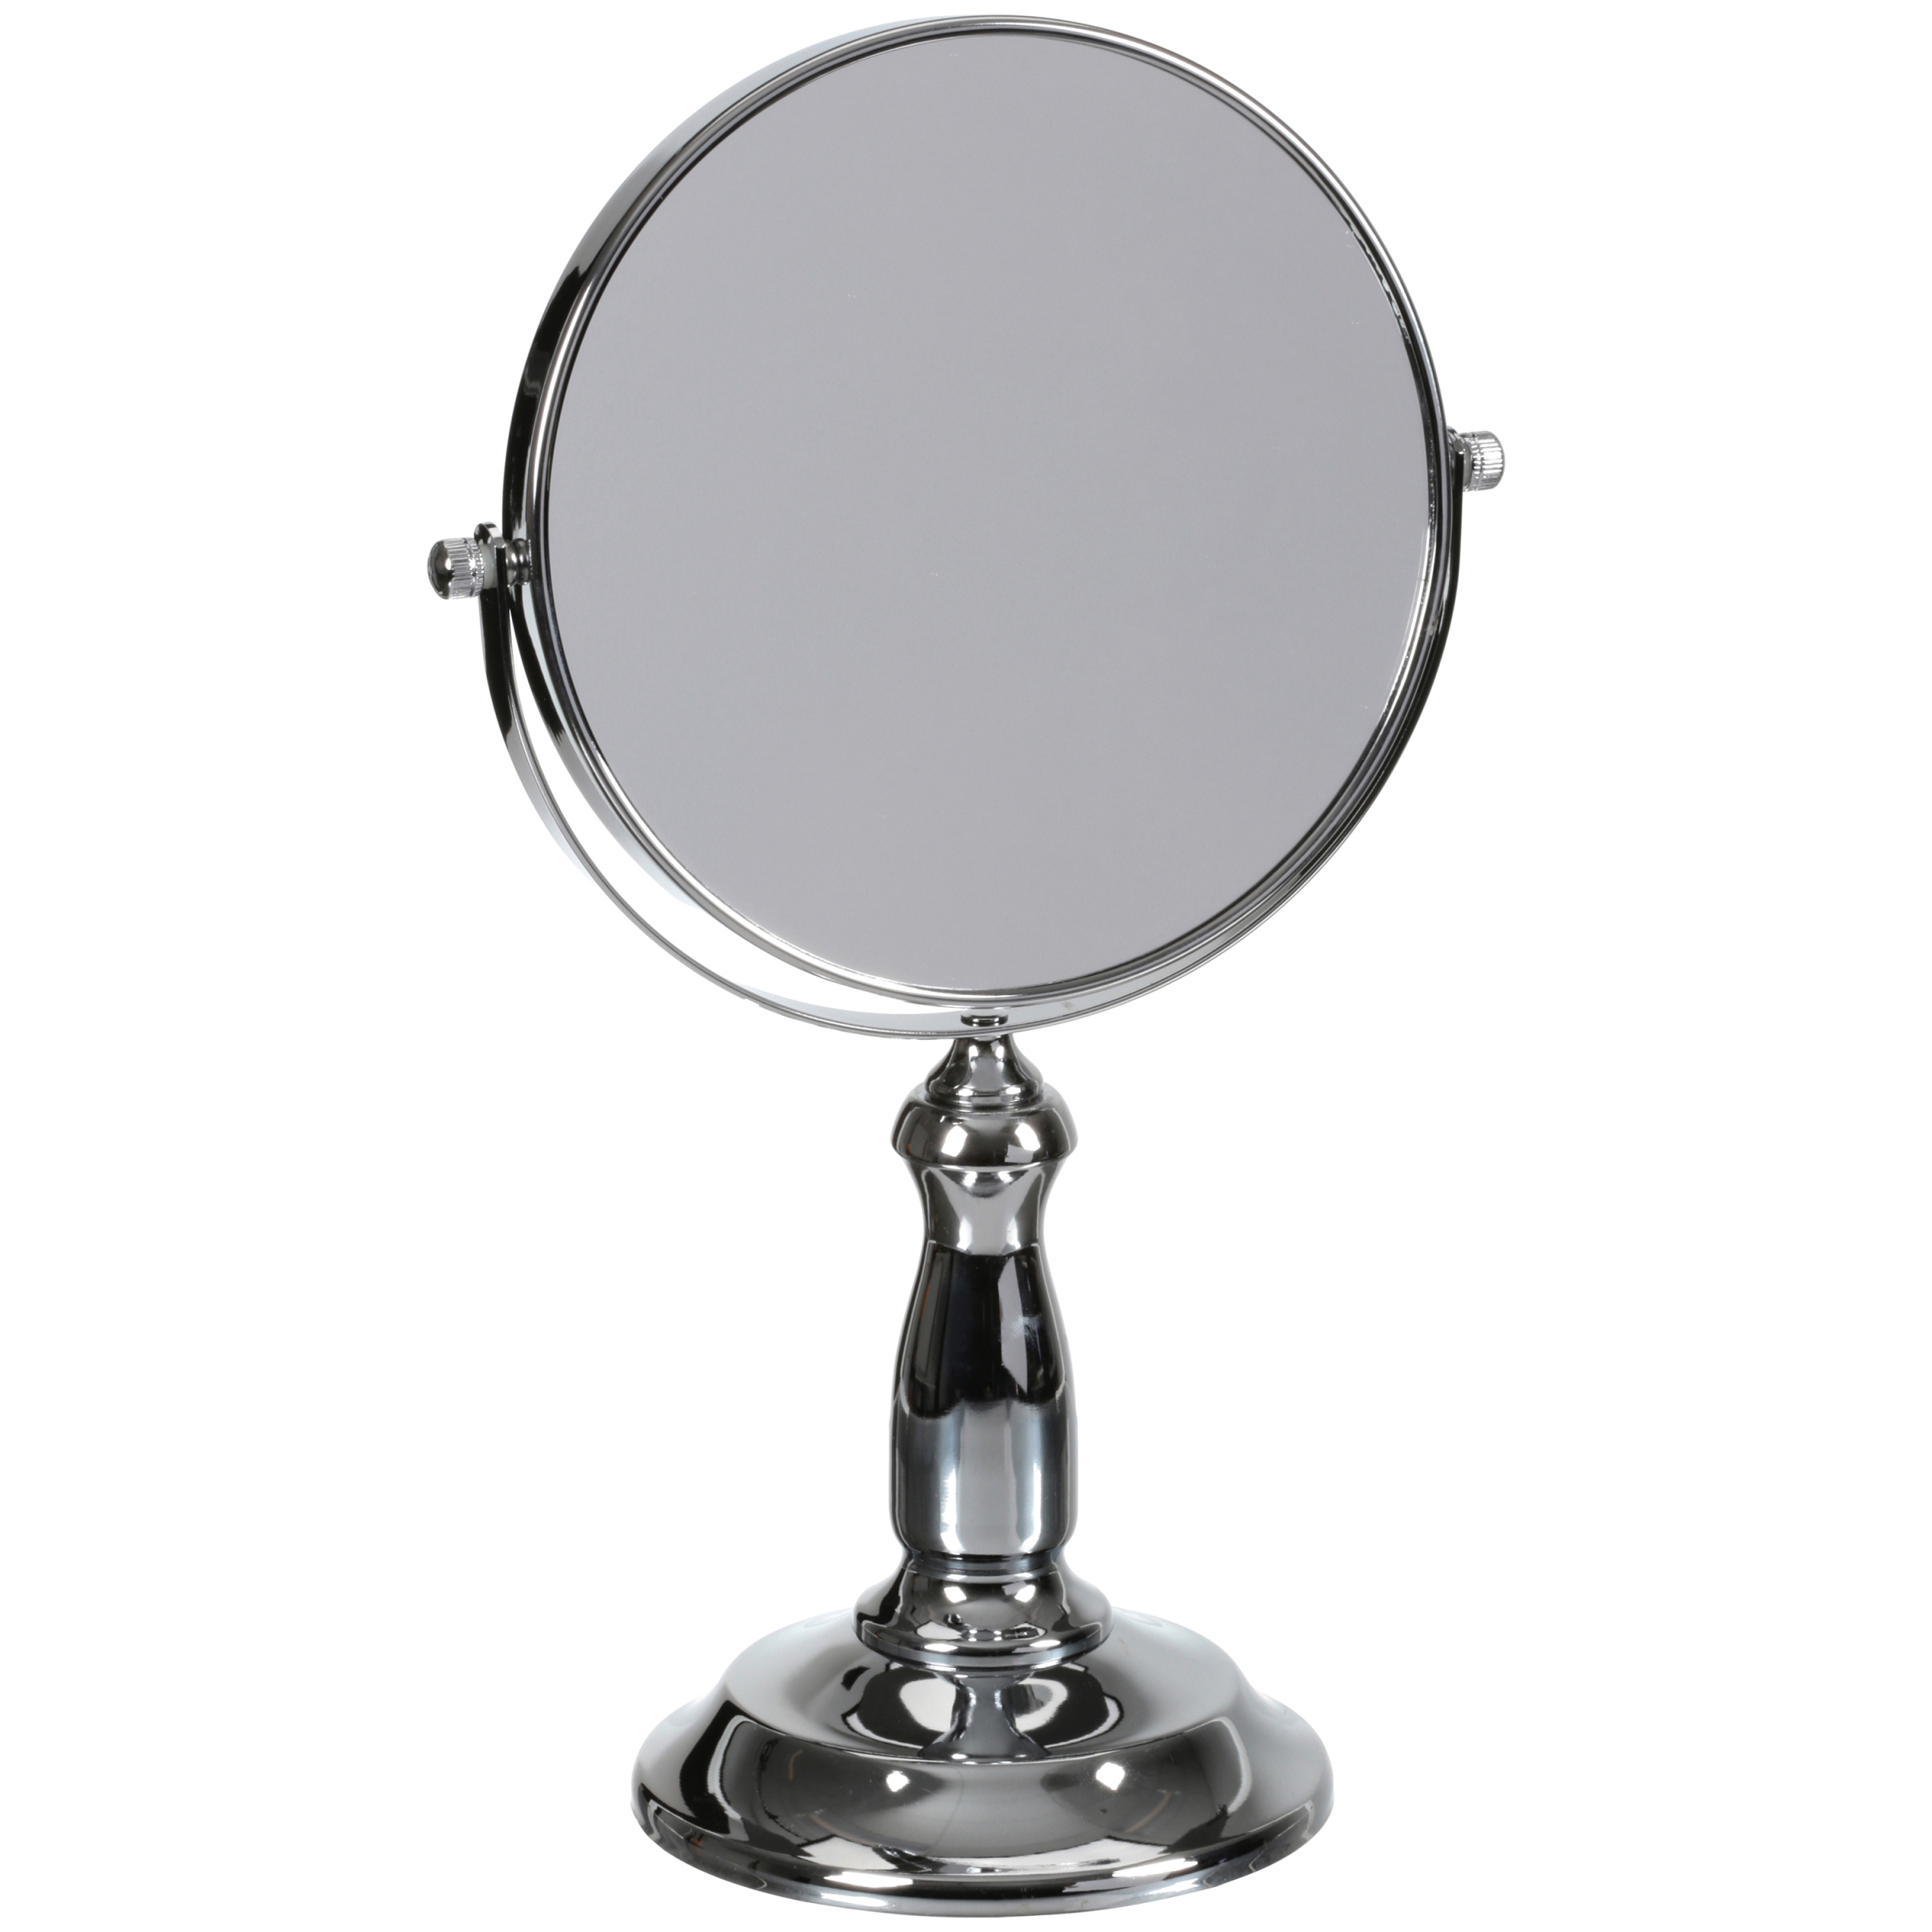 Bathsense Chrome Vanity Mirror by Bathsense, Llc